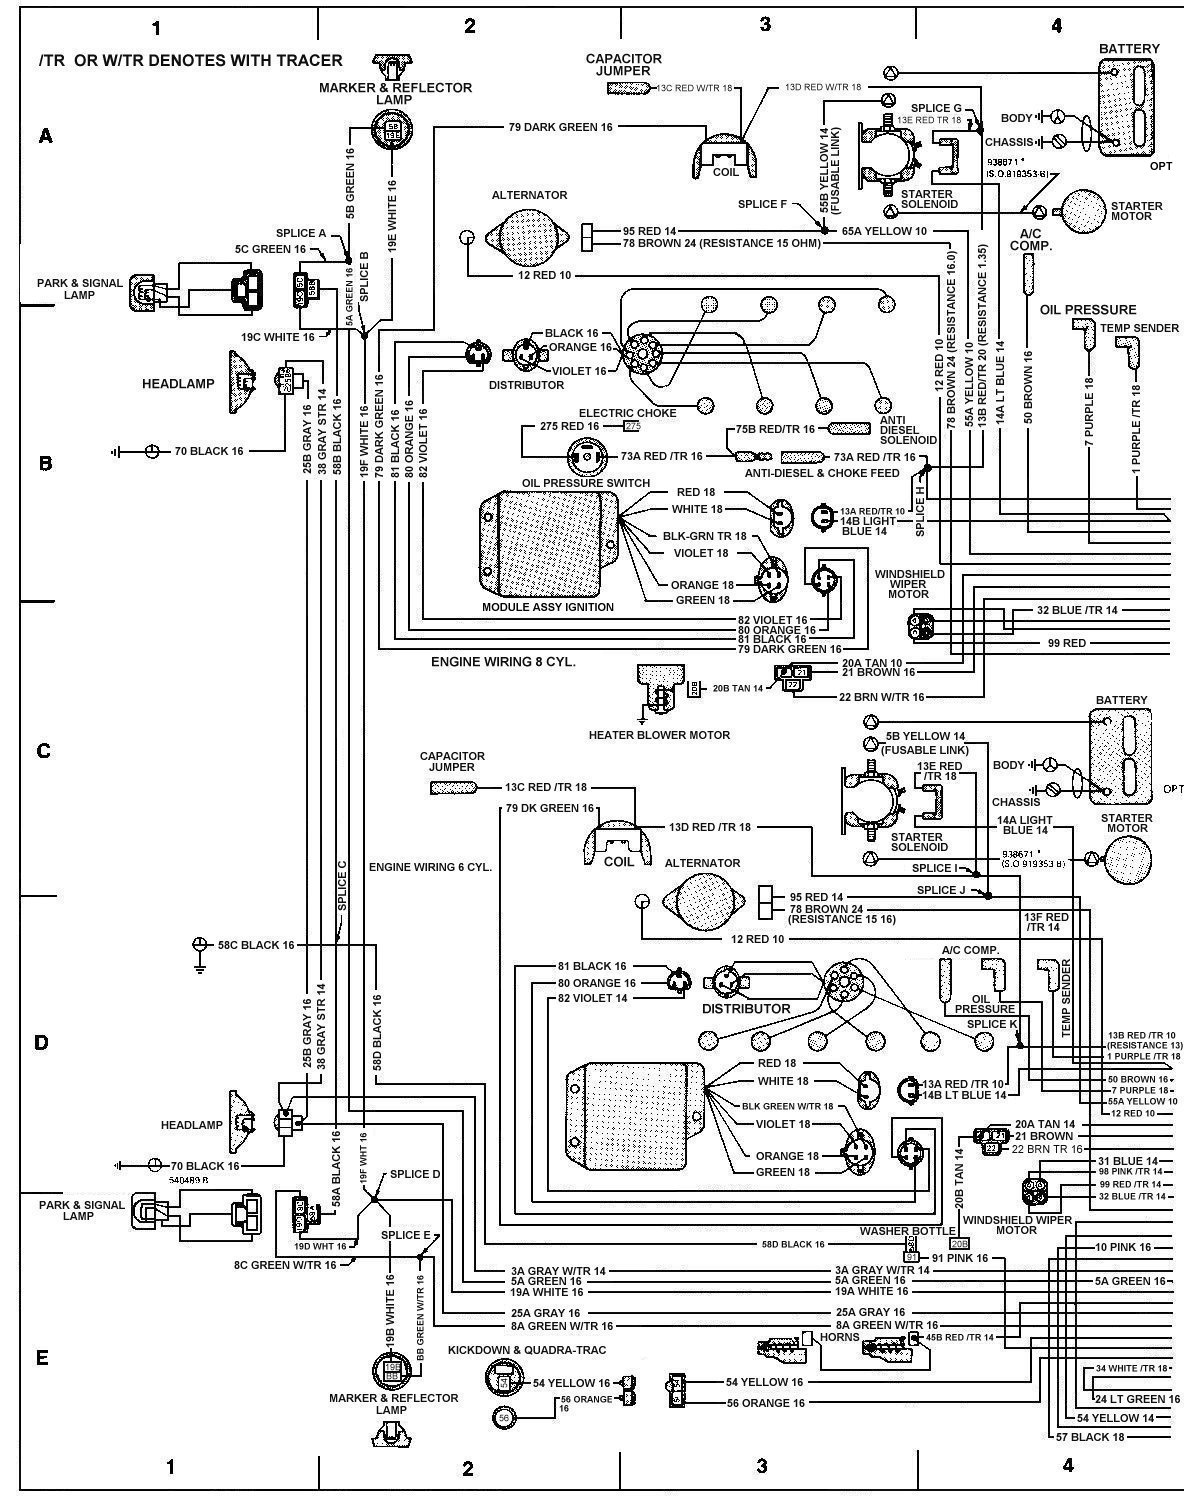 1981 ironhead wiring diagram 79 cj7 258 weber carb conversion - no electric choke wire ... #5